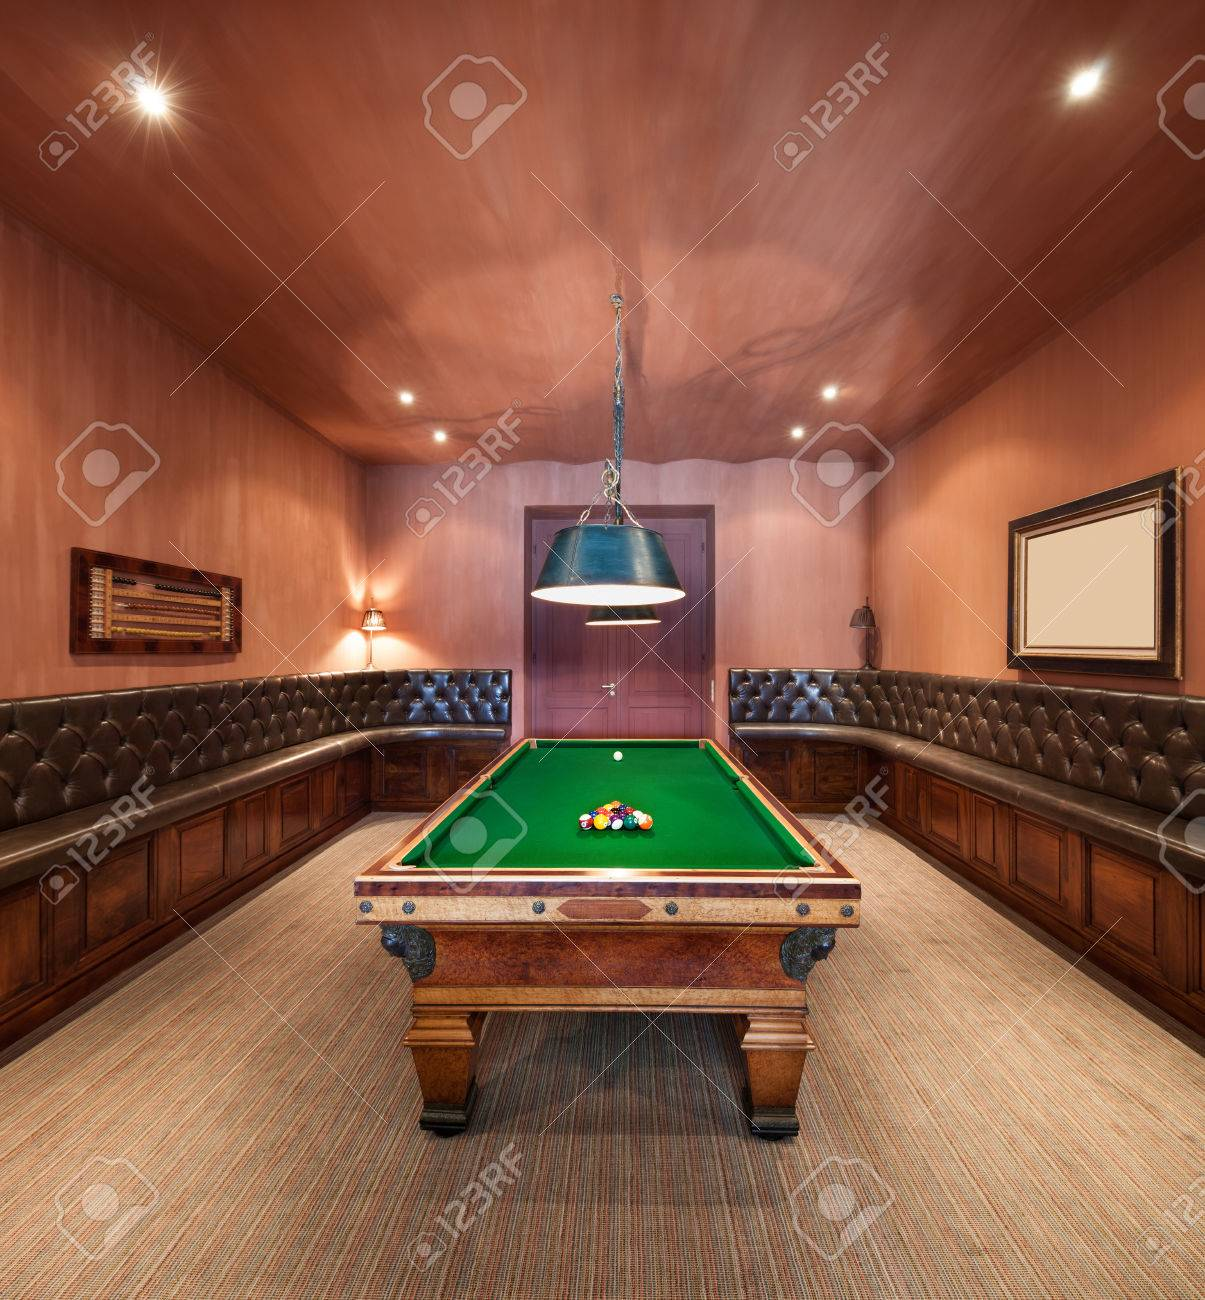 Entertainment room in luxury mansion with pool table - 48093981